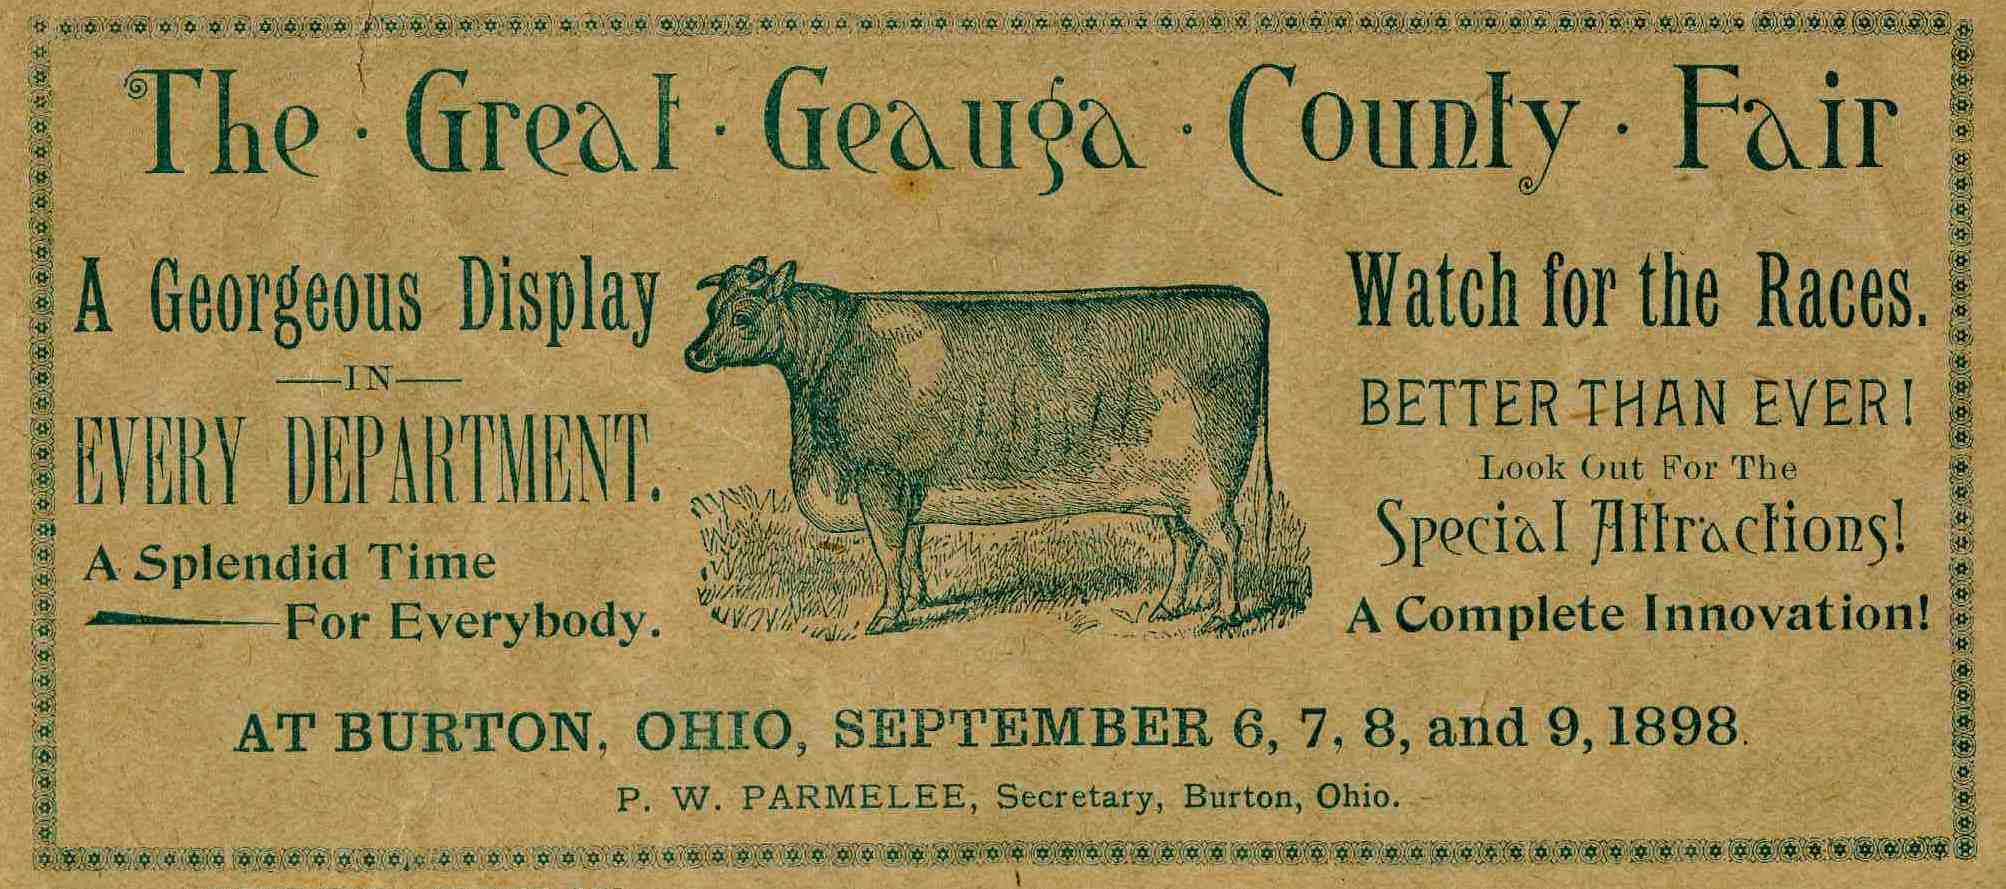 Geauga County Fair Ad